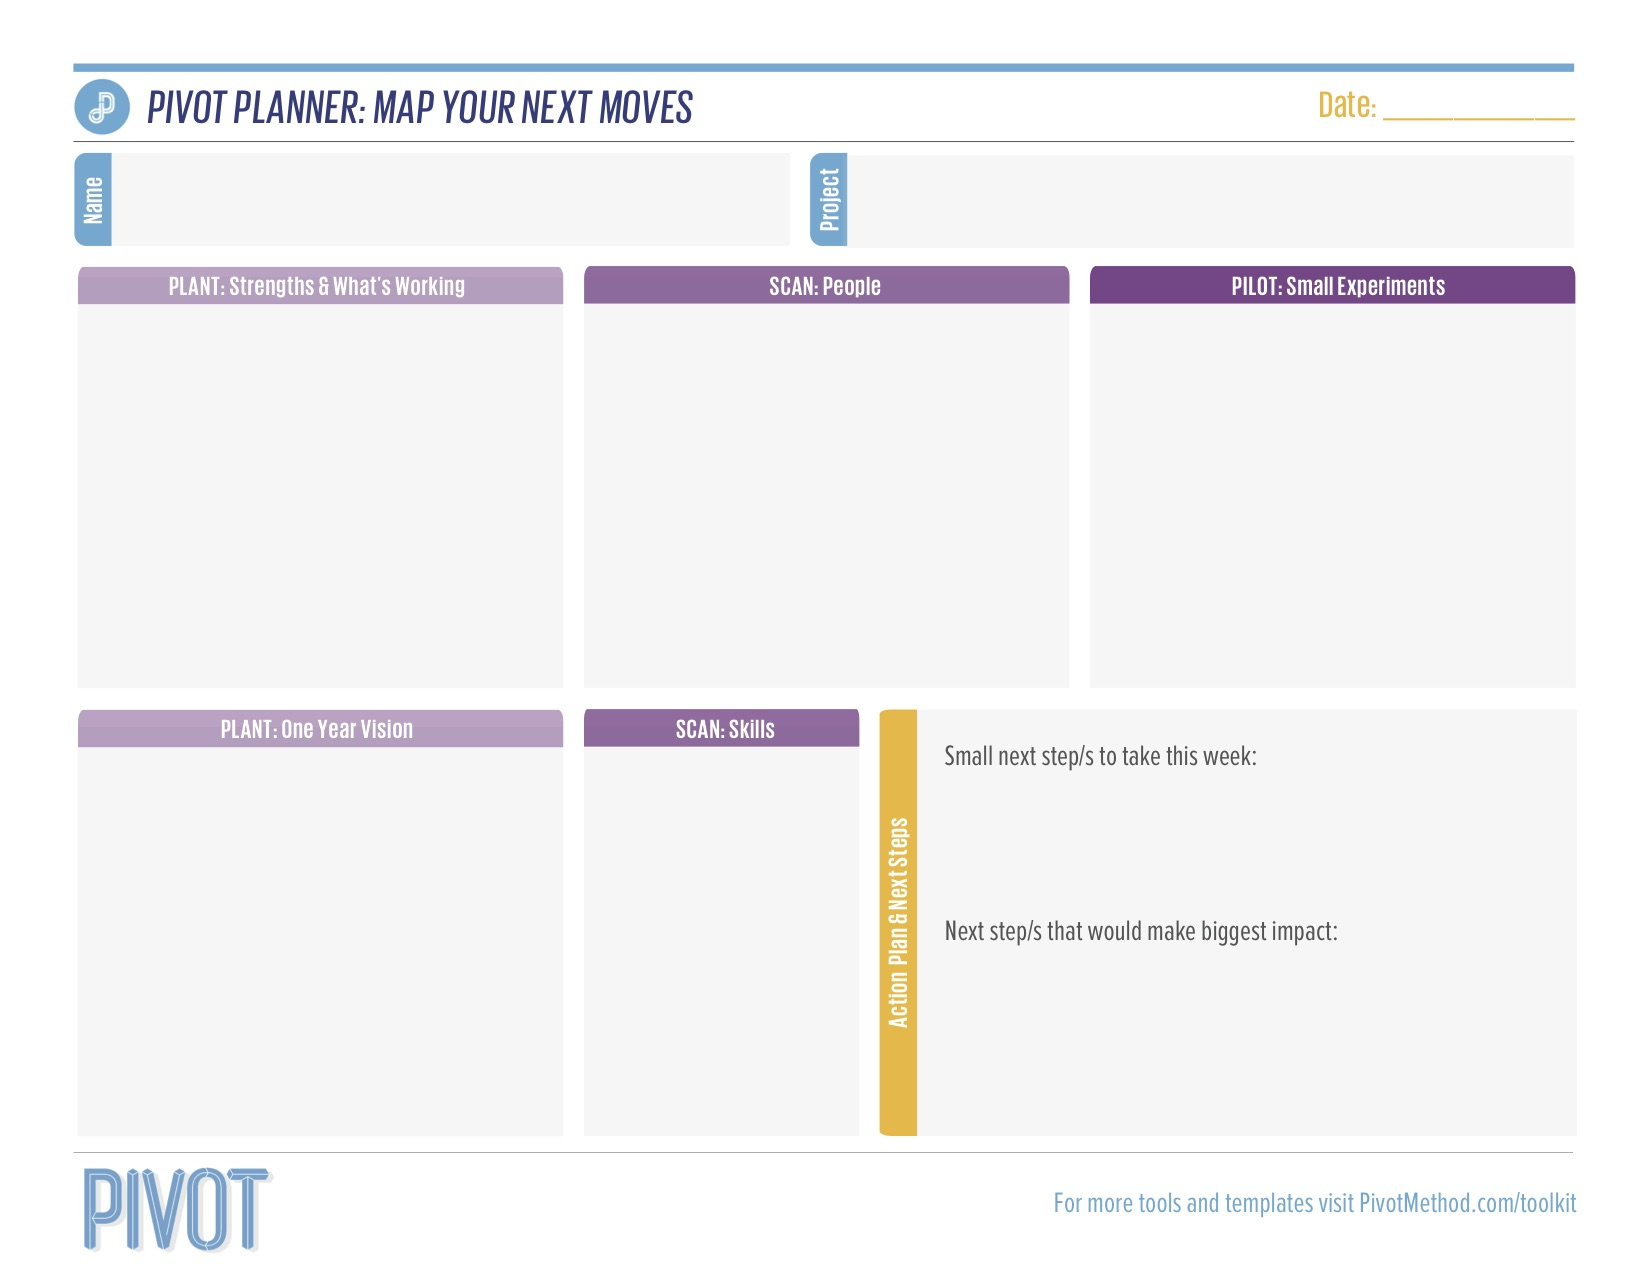 Pivot Planner Notepad - For brainstorming next moves on projects, business plans and career moves large and small!